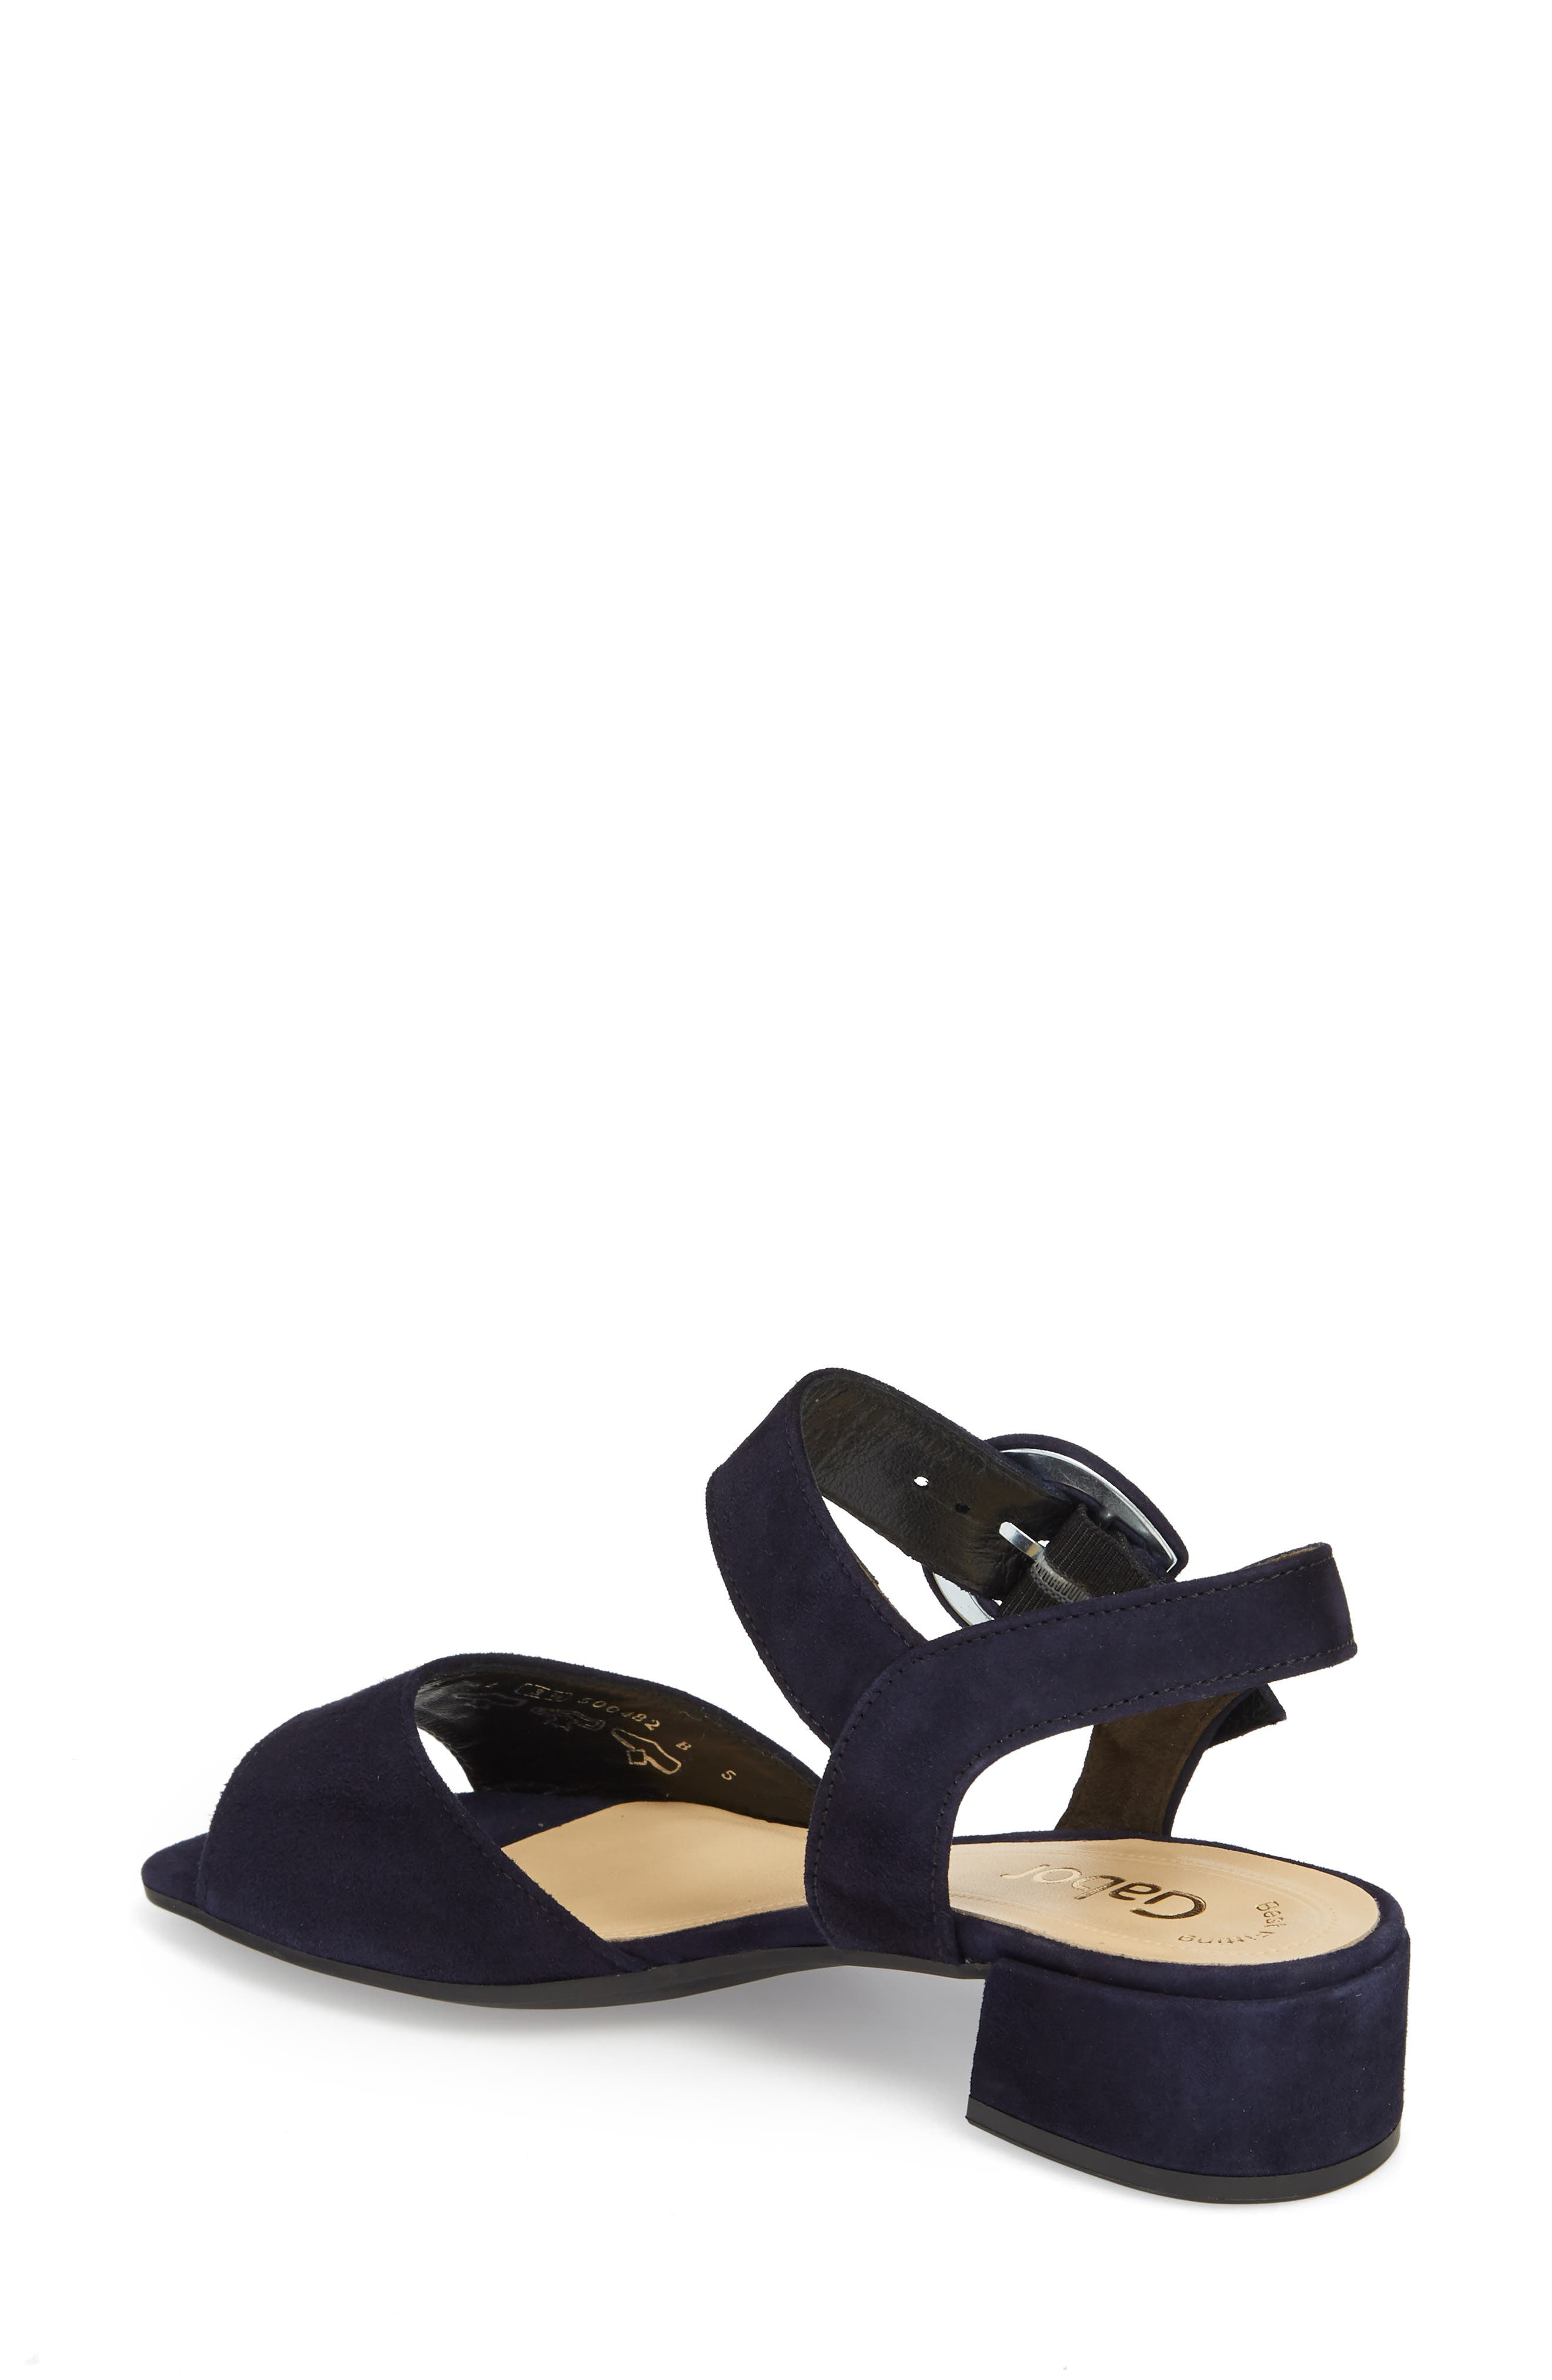 Block Heel Sandal,                             Alternate thumbnail 2, color,                             NAVY SUEDE